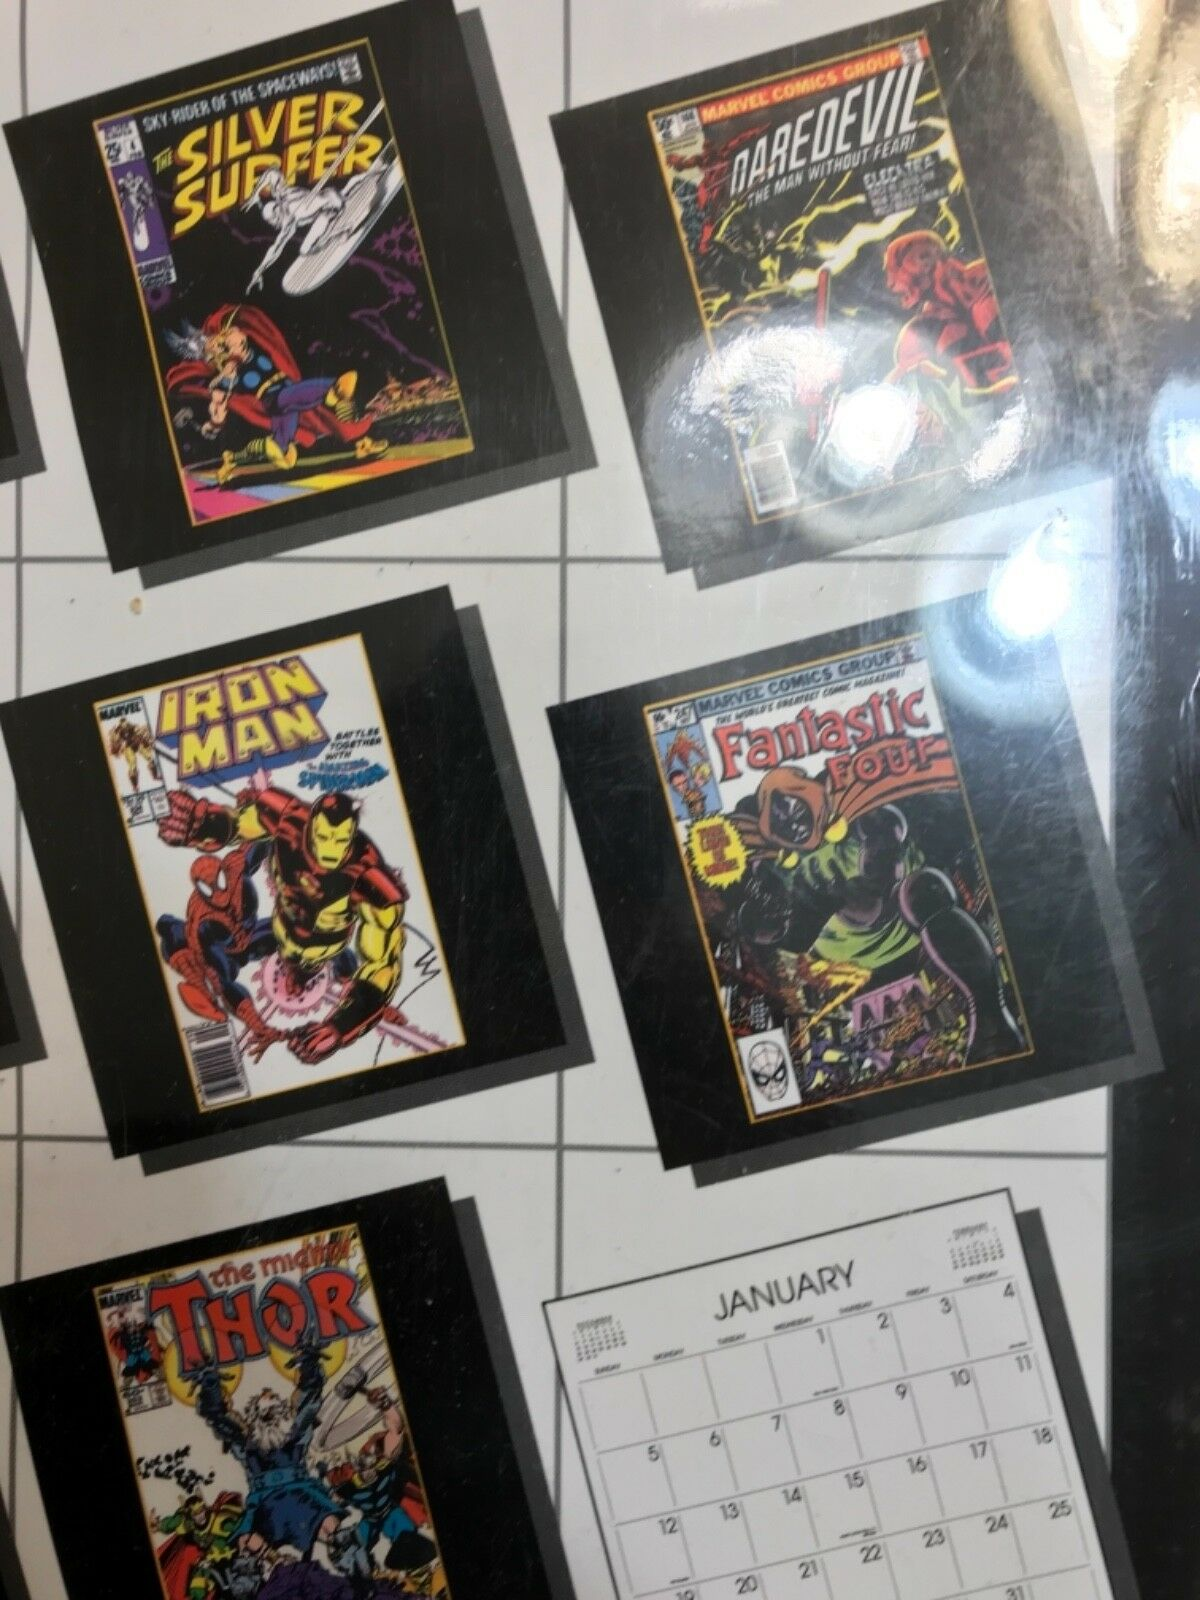 MARVEL SUPER HEROES 1992 CALENDAR - VINTAGE With many great great great cover posters  cde1f6